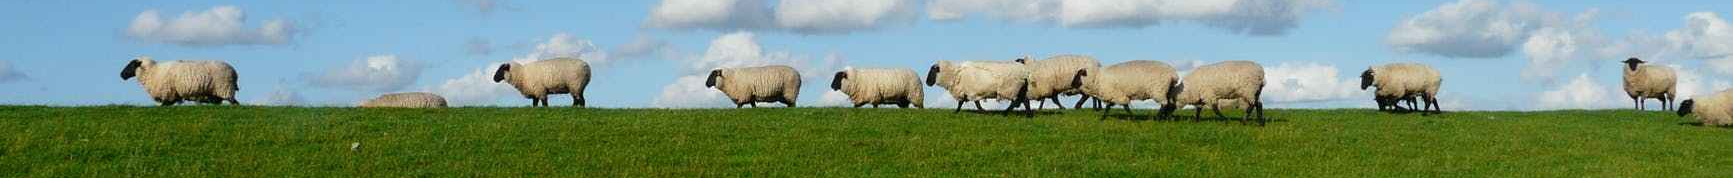 sheep-flock-of-sheep-series-standing-on-85683.jpeg